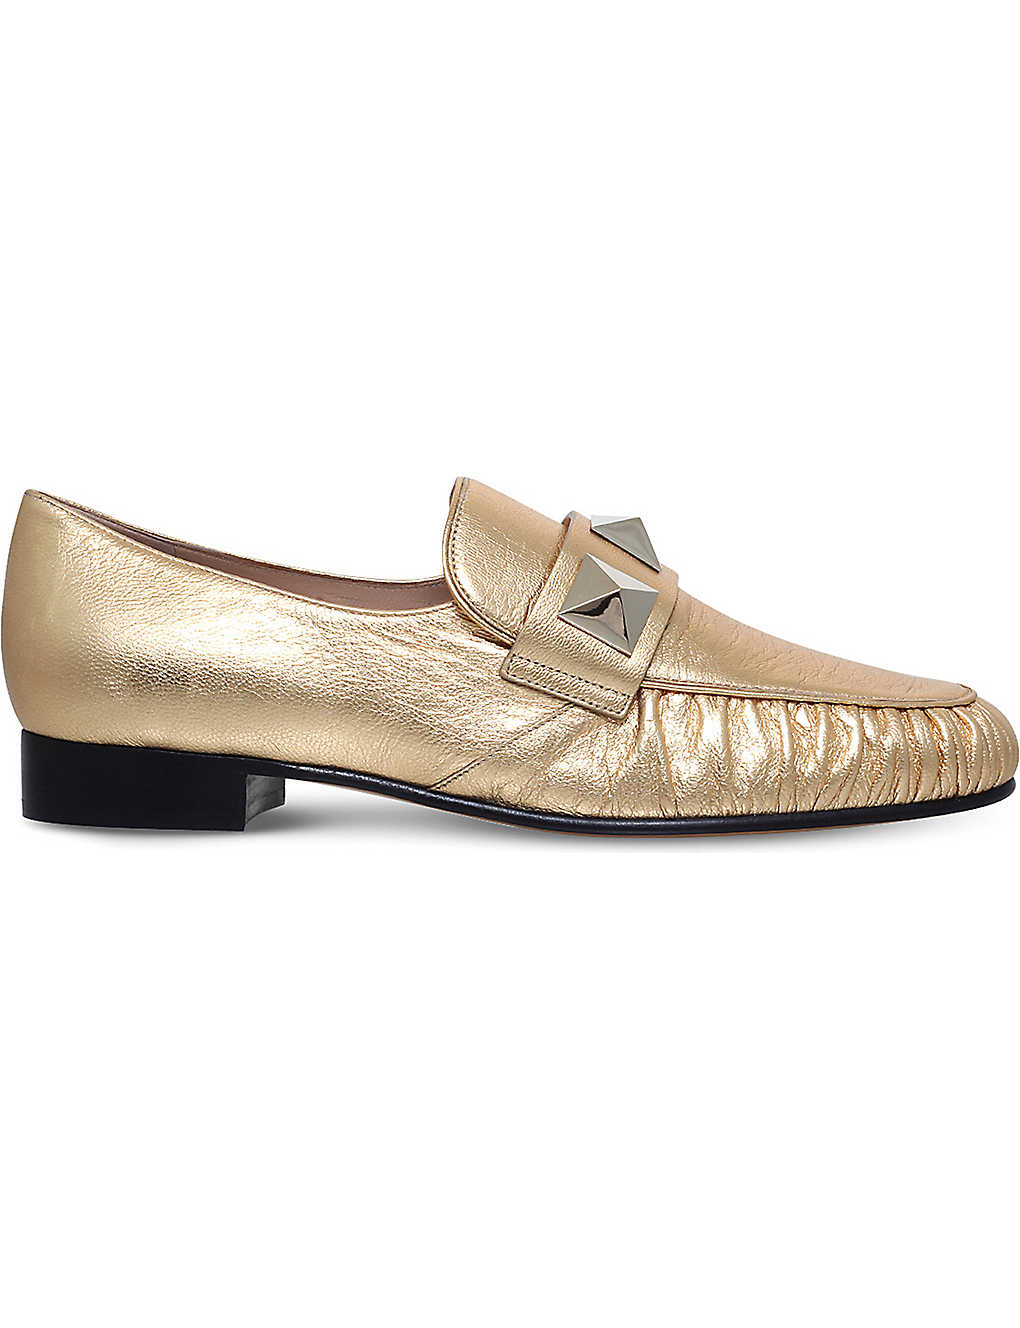 1c8d38288a4 VALENTINO - Rockstud leather loafers